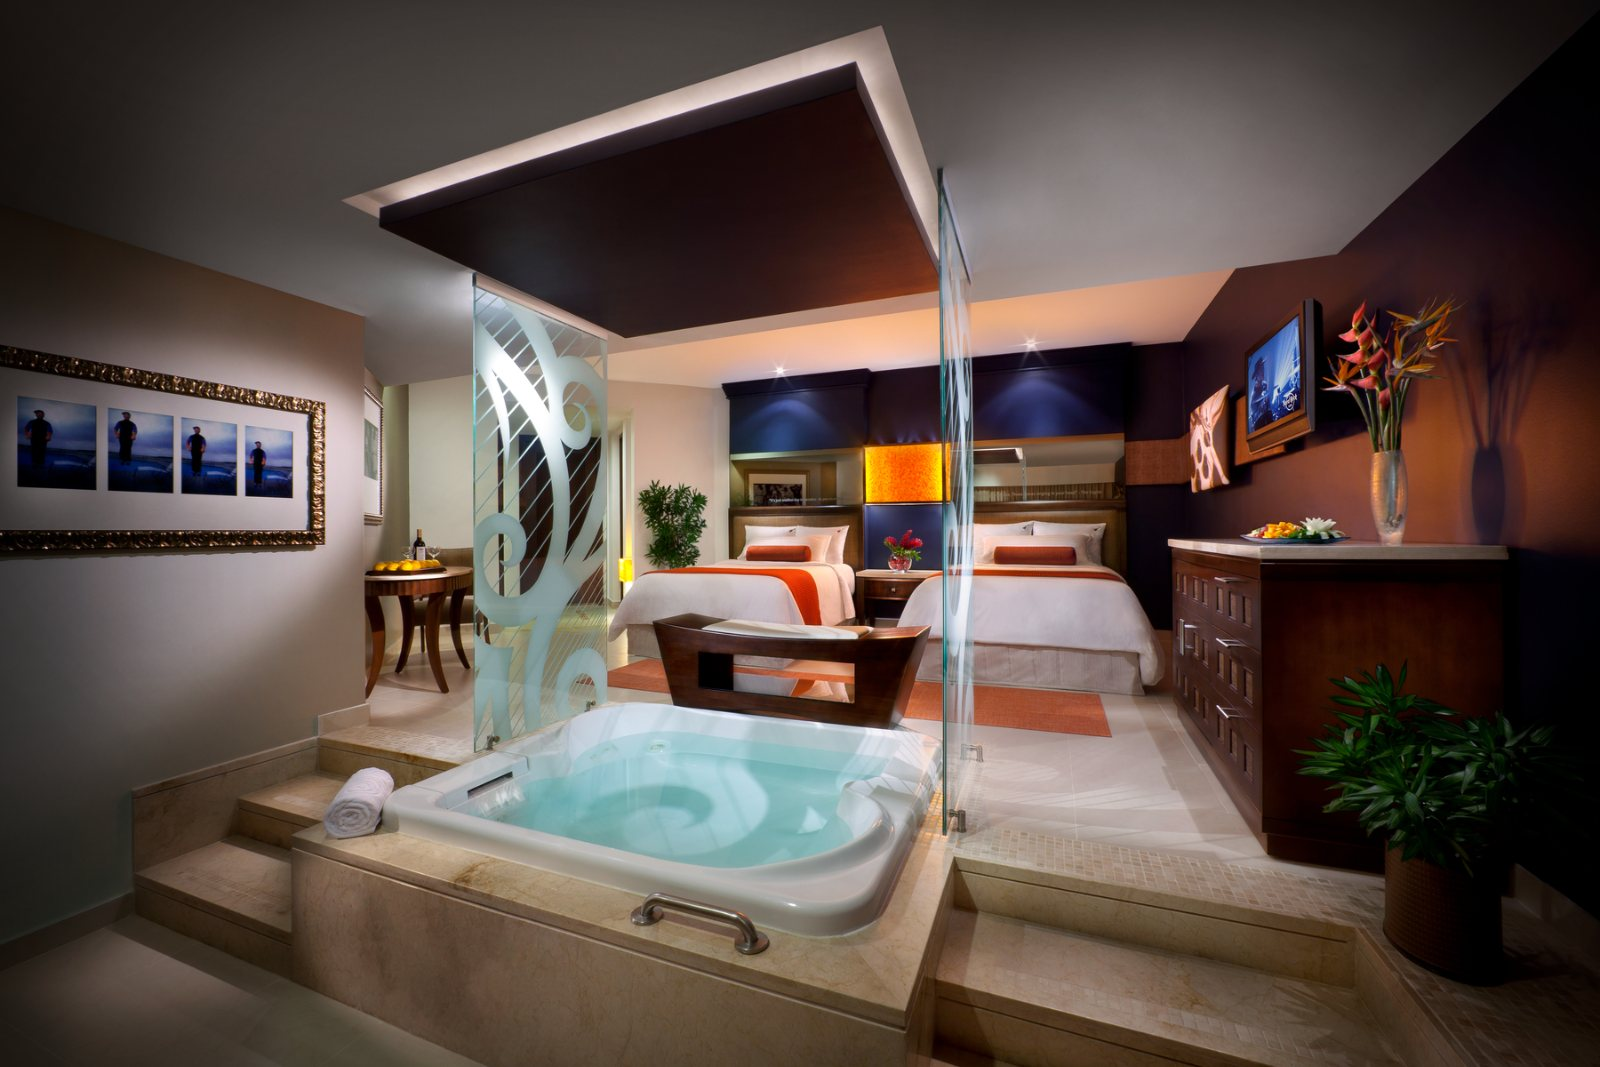 A luxury Suite in the hard rock hotel featuring two beds a large burau and a step in hot tub framed on two sides with decorative glass guards